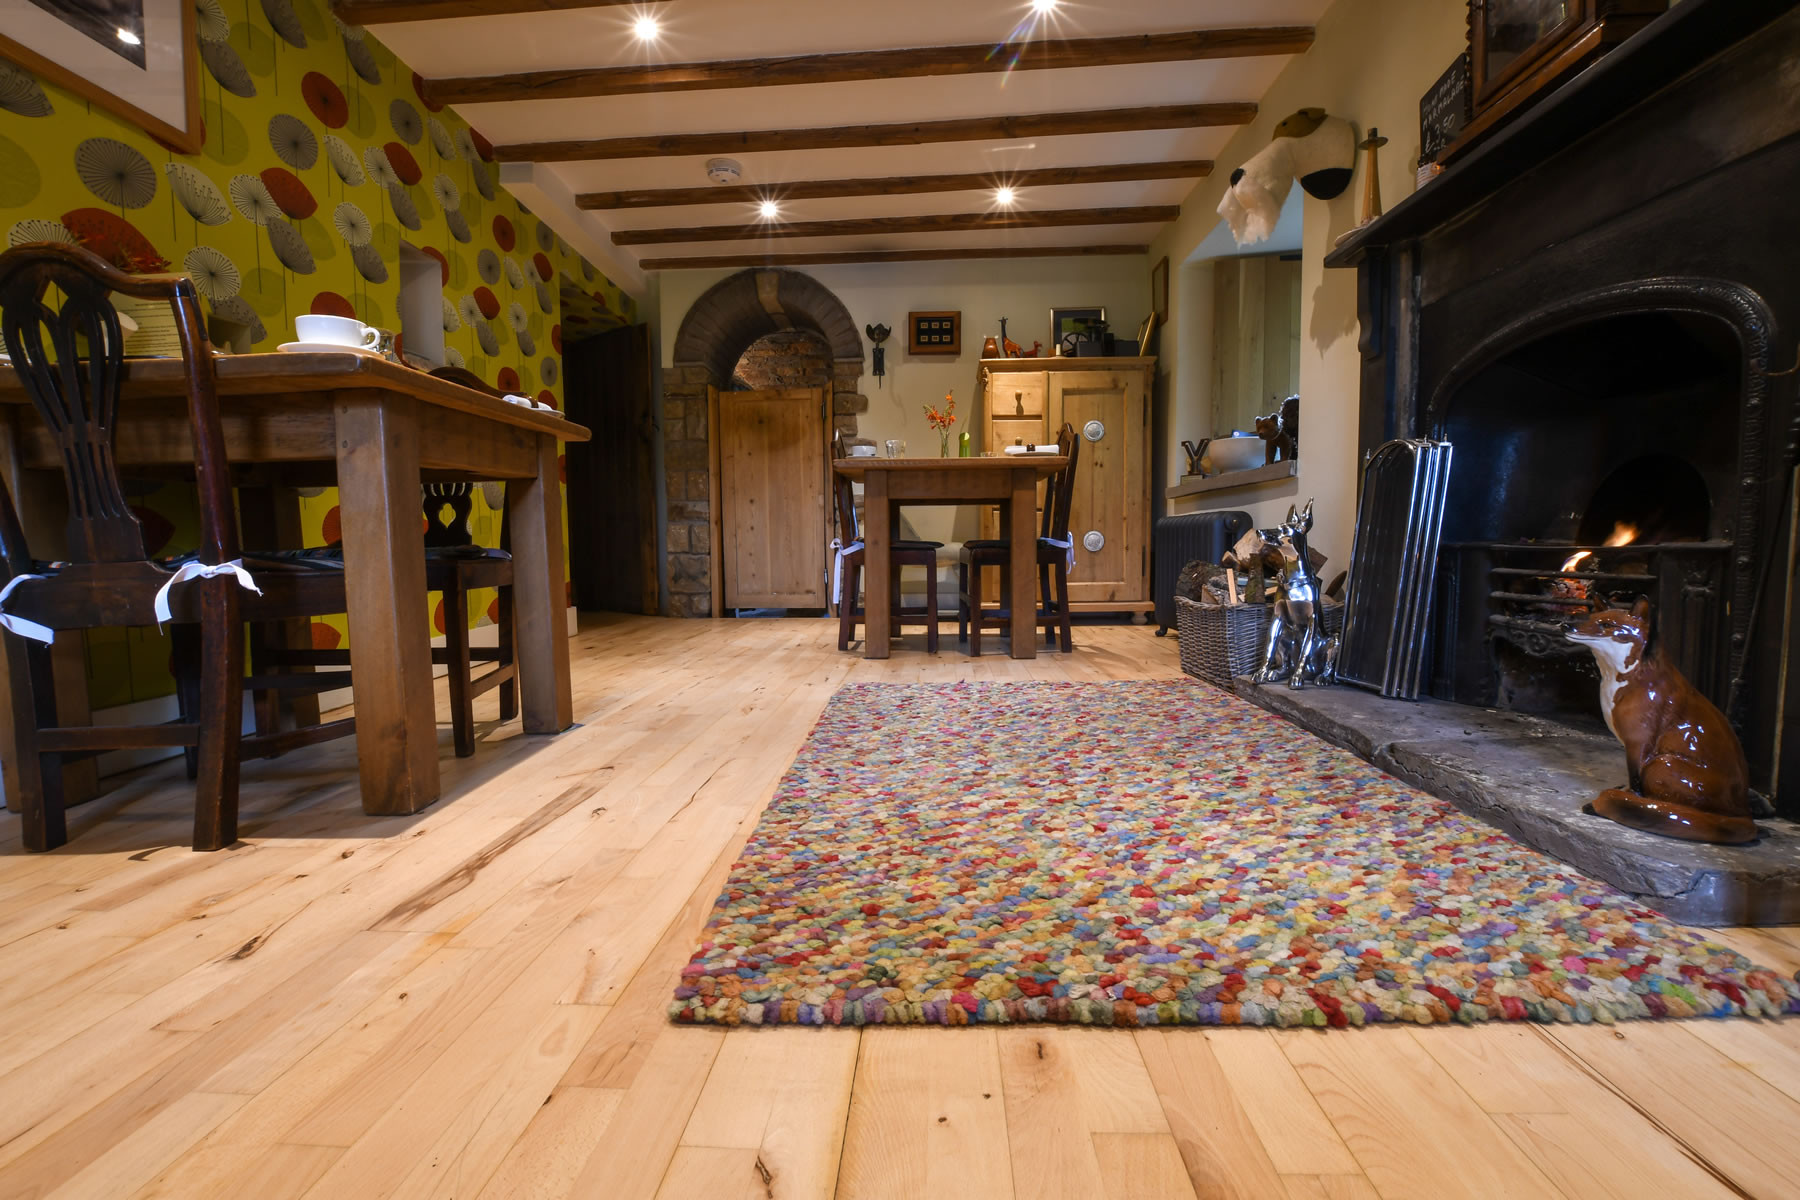 mills hardwood flooring bainbridge of low mill guest house accommodation leyburn north yorkshire pertaining to view all 10 images